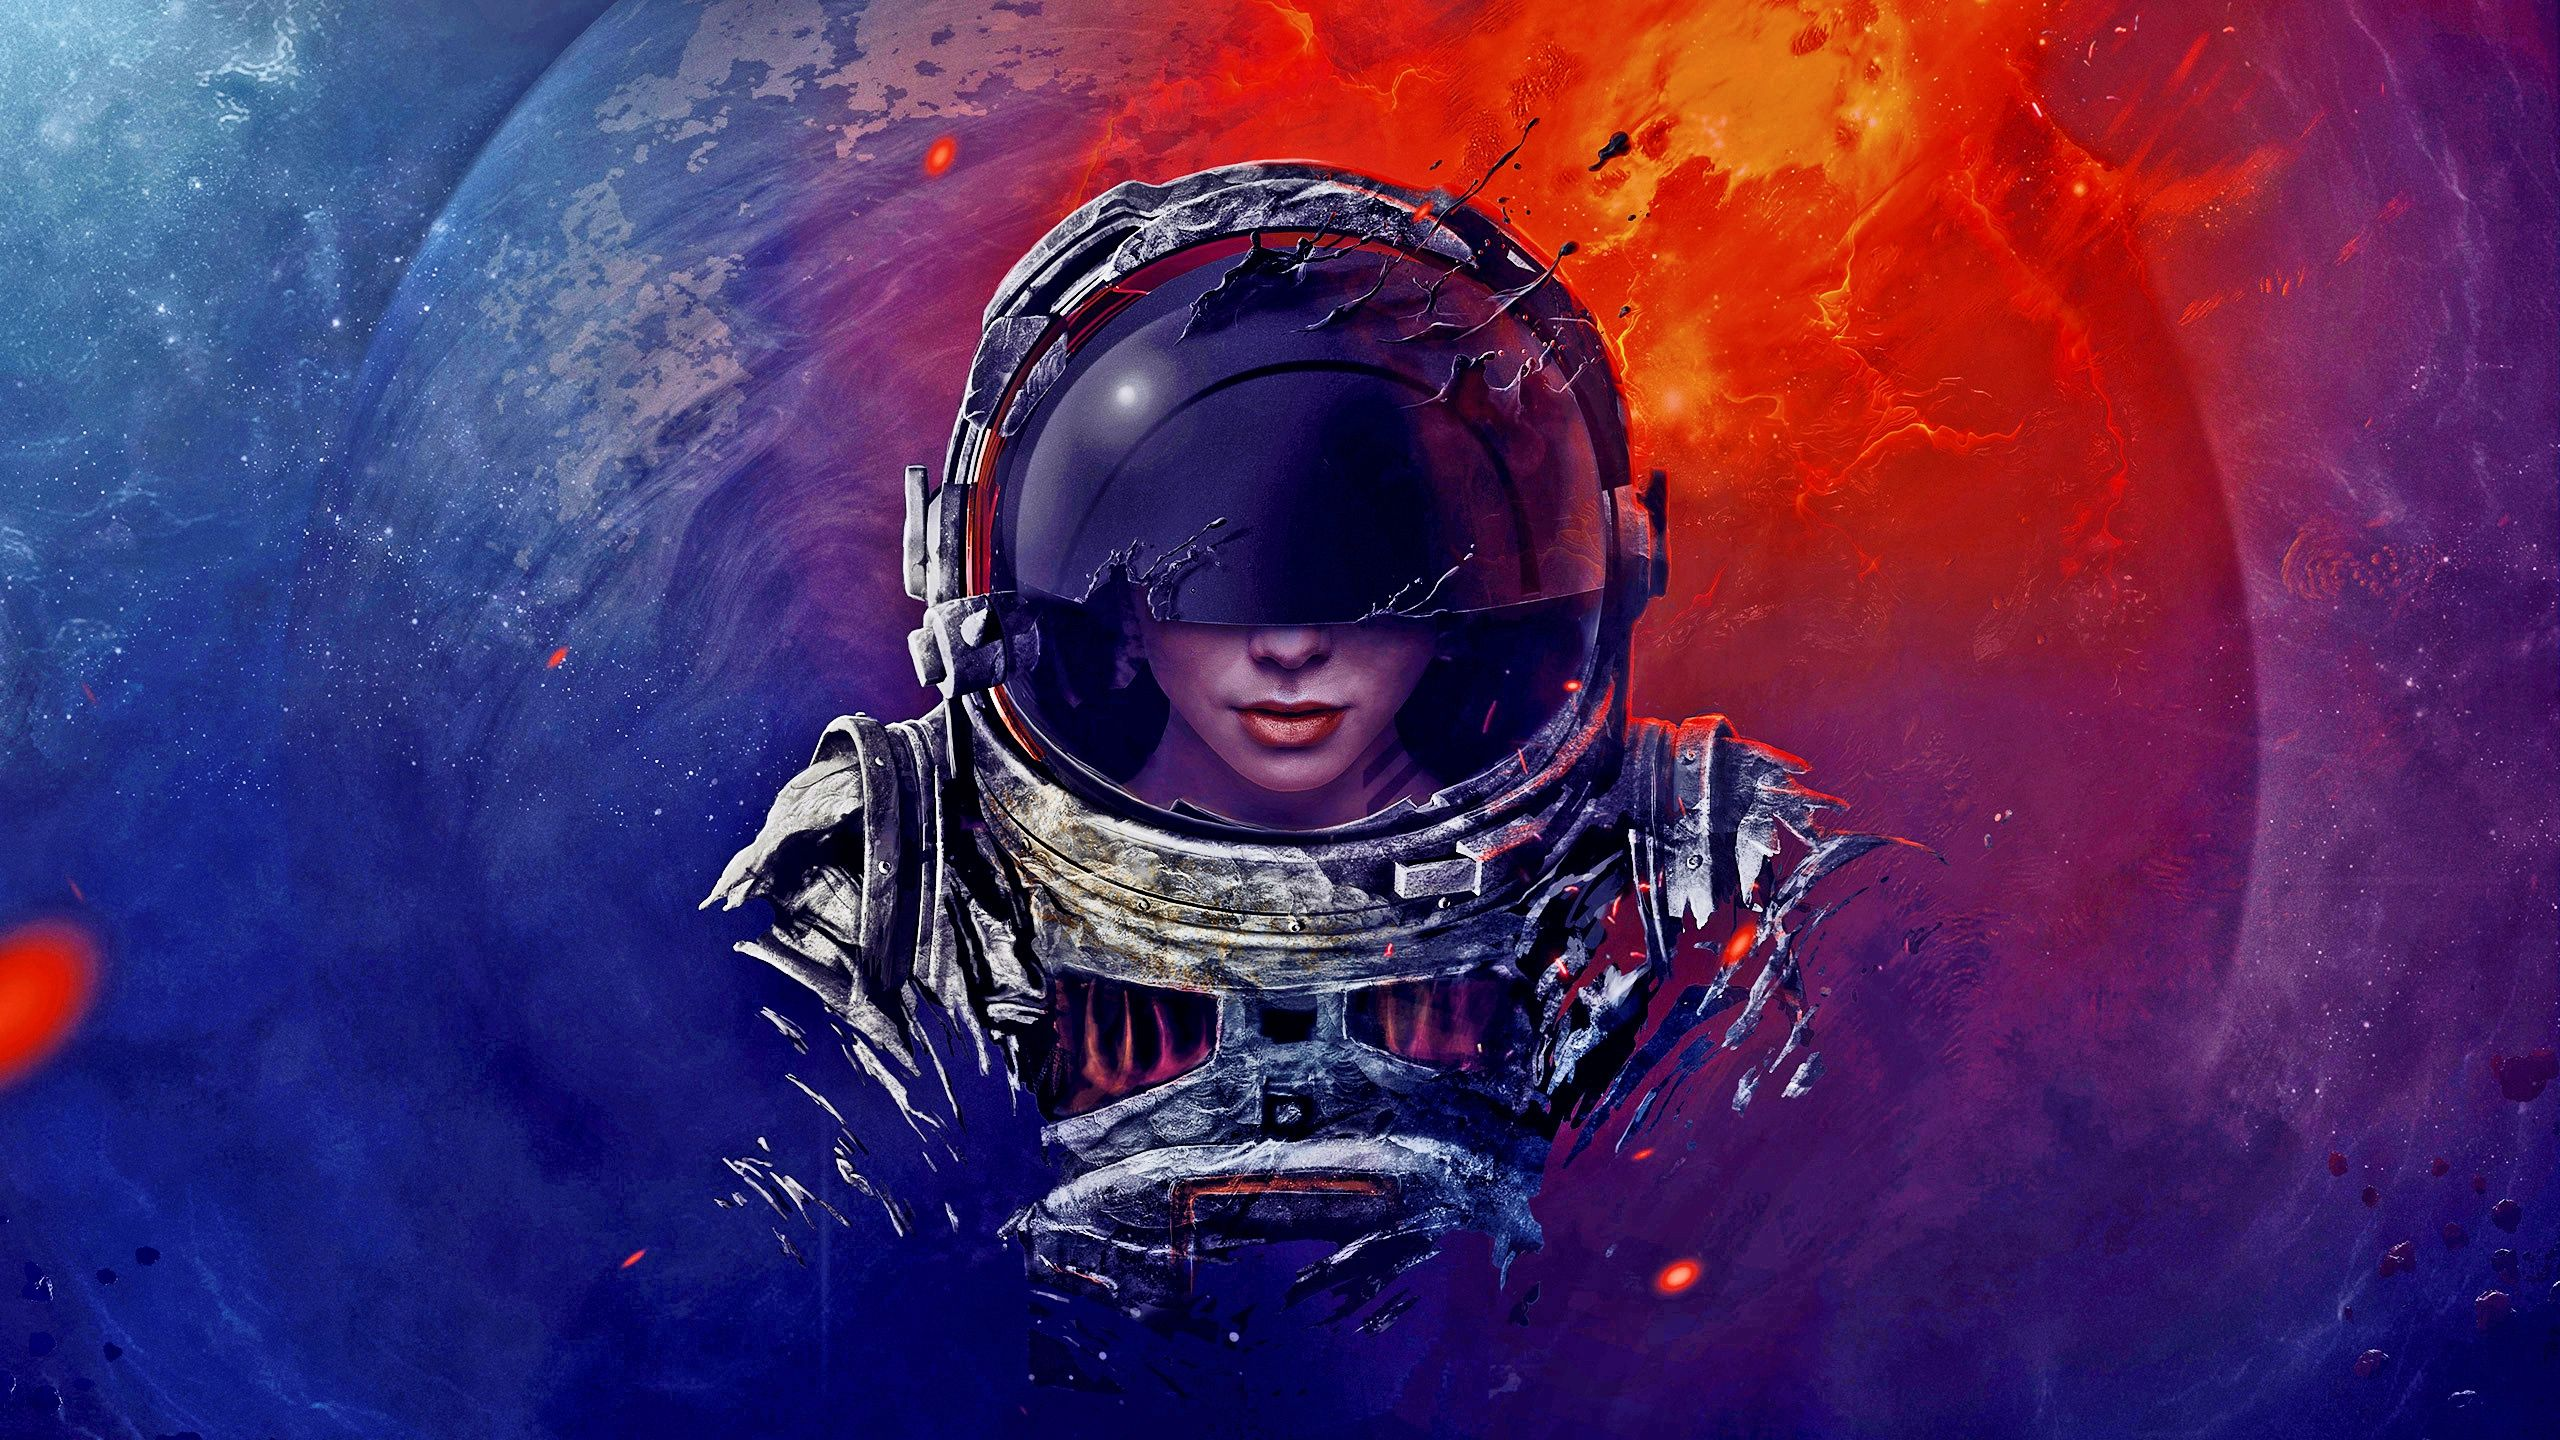 2560x1440 228 Astronaut HD Wallpapers | Background Images - Wallpaper Abyss